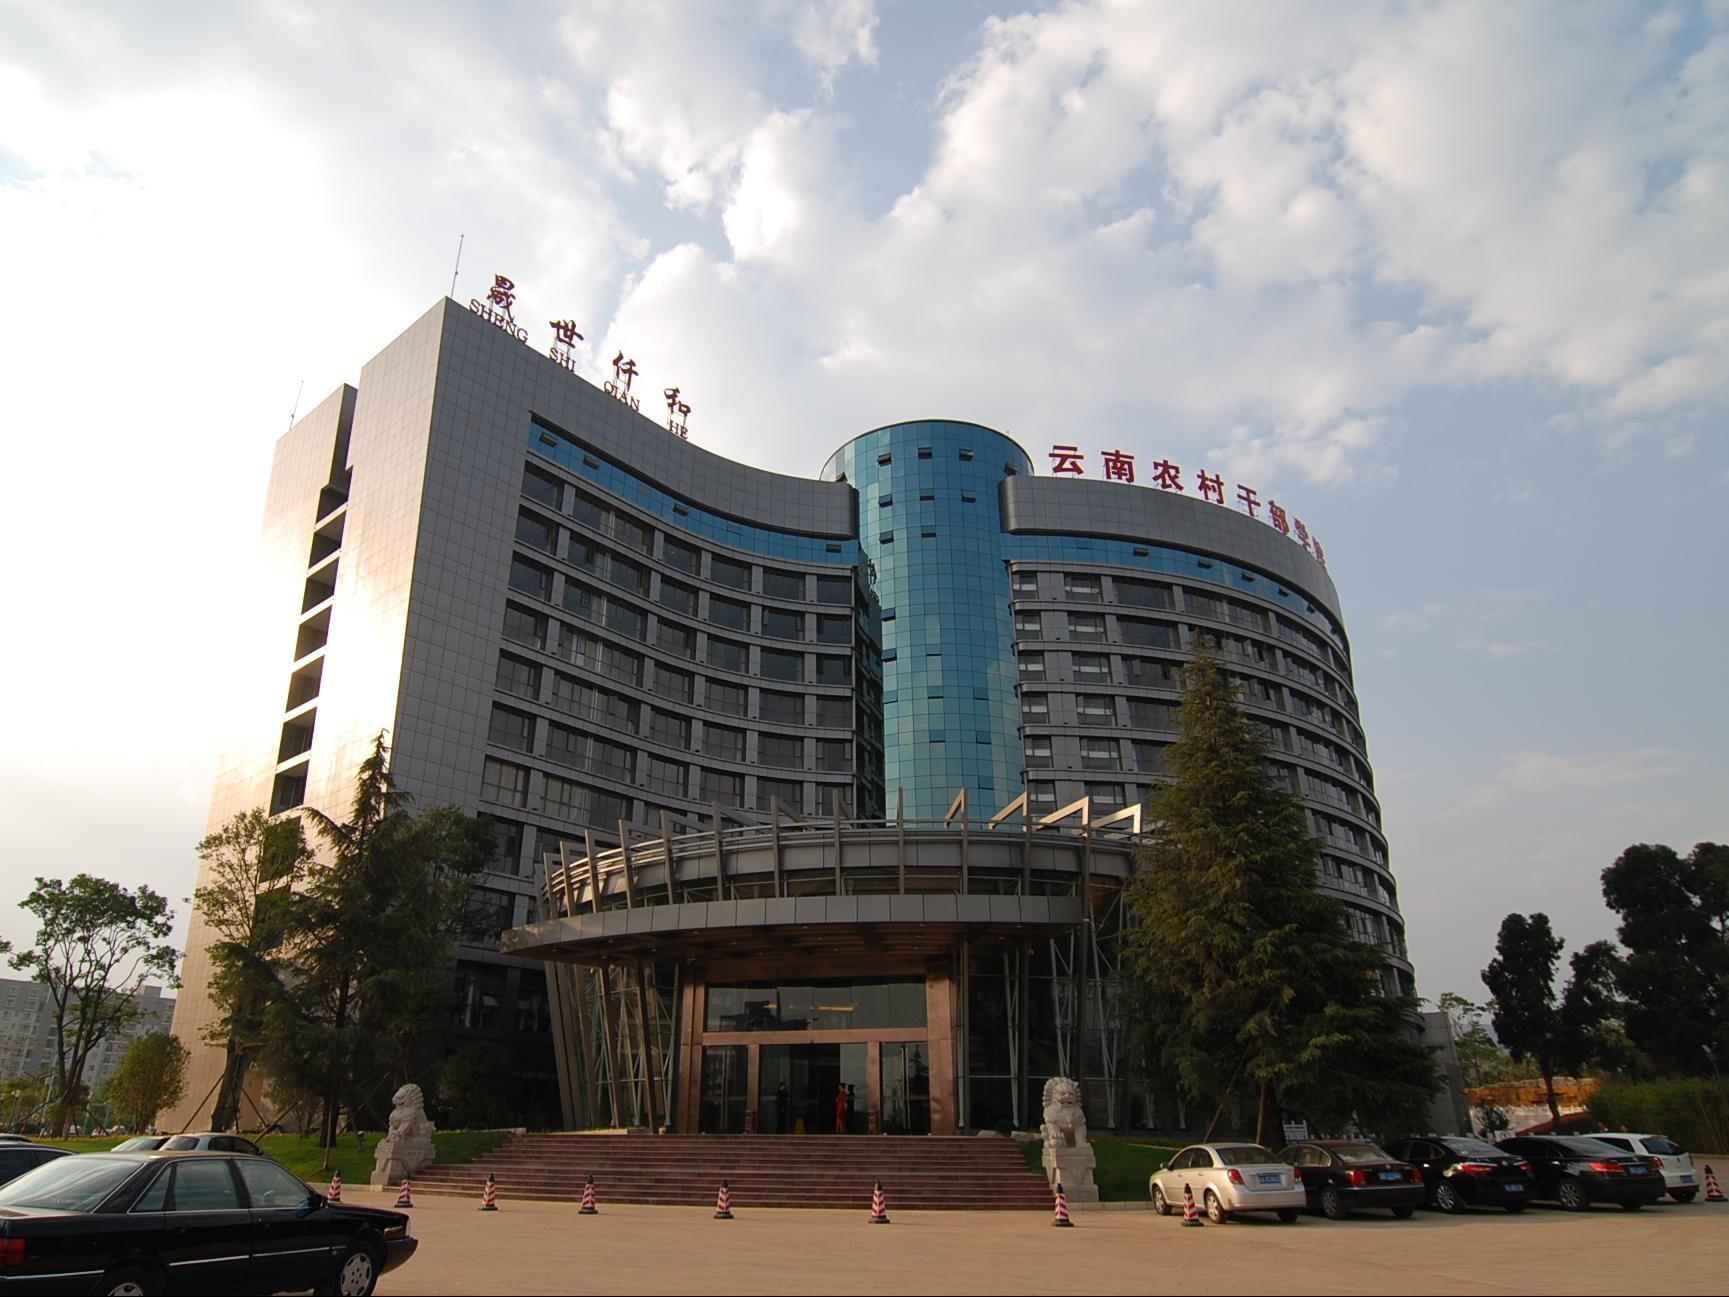 Kunming Sheng Shi Qian He Hotel - Hotel and accommodation in China in Kunming